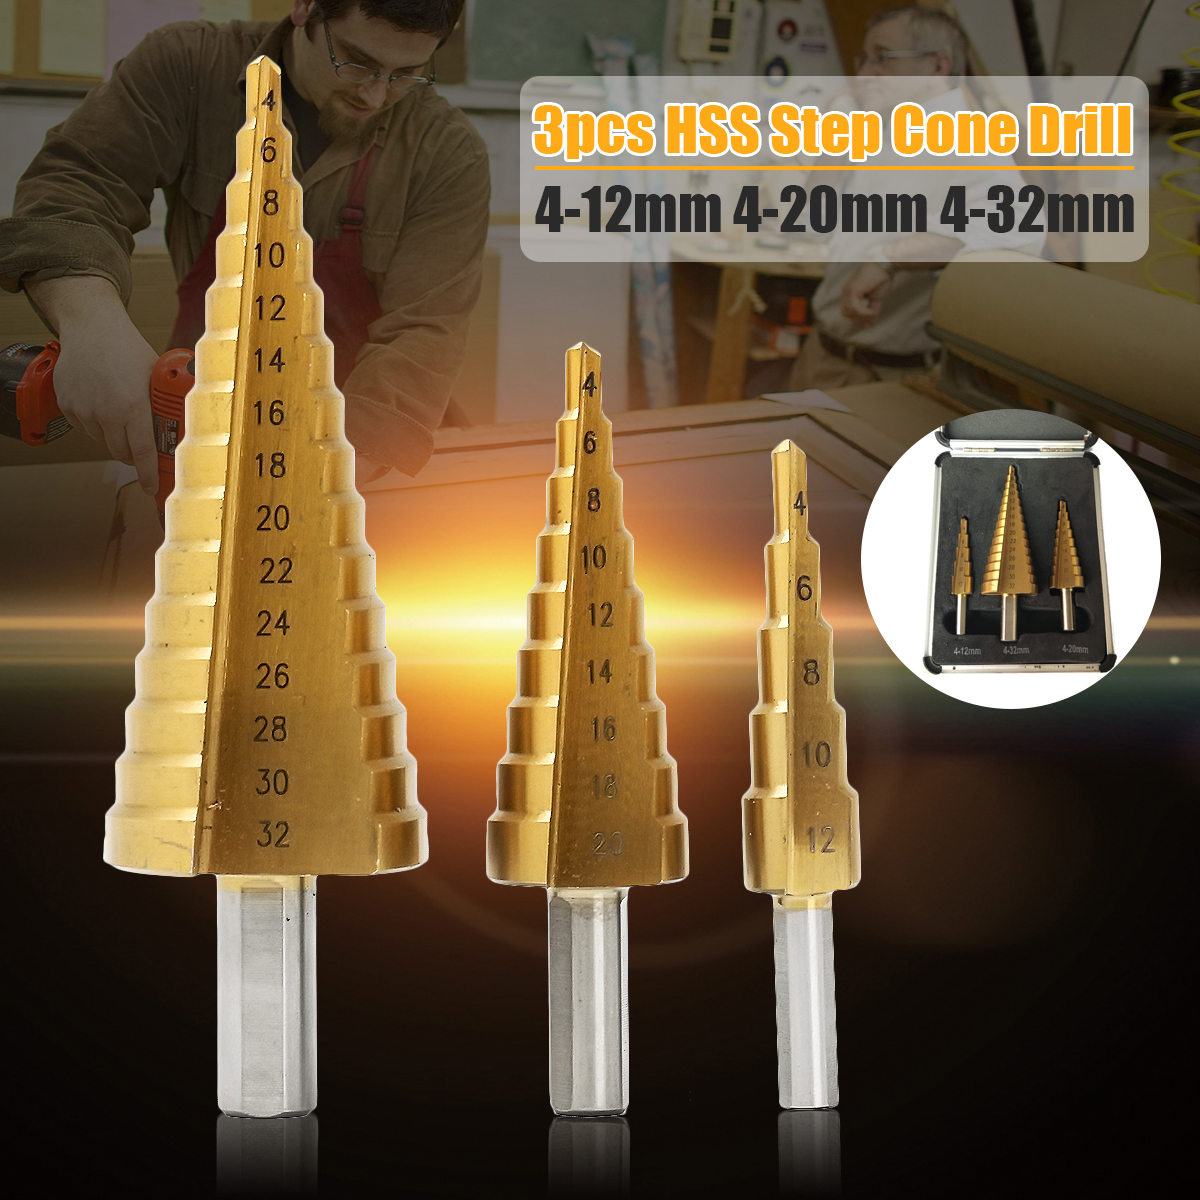 3Pcs HSS Step Cone Drill Bits Titanium Coated Set Hole Cutter 4-12/20/32mm with Case